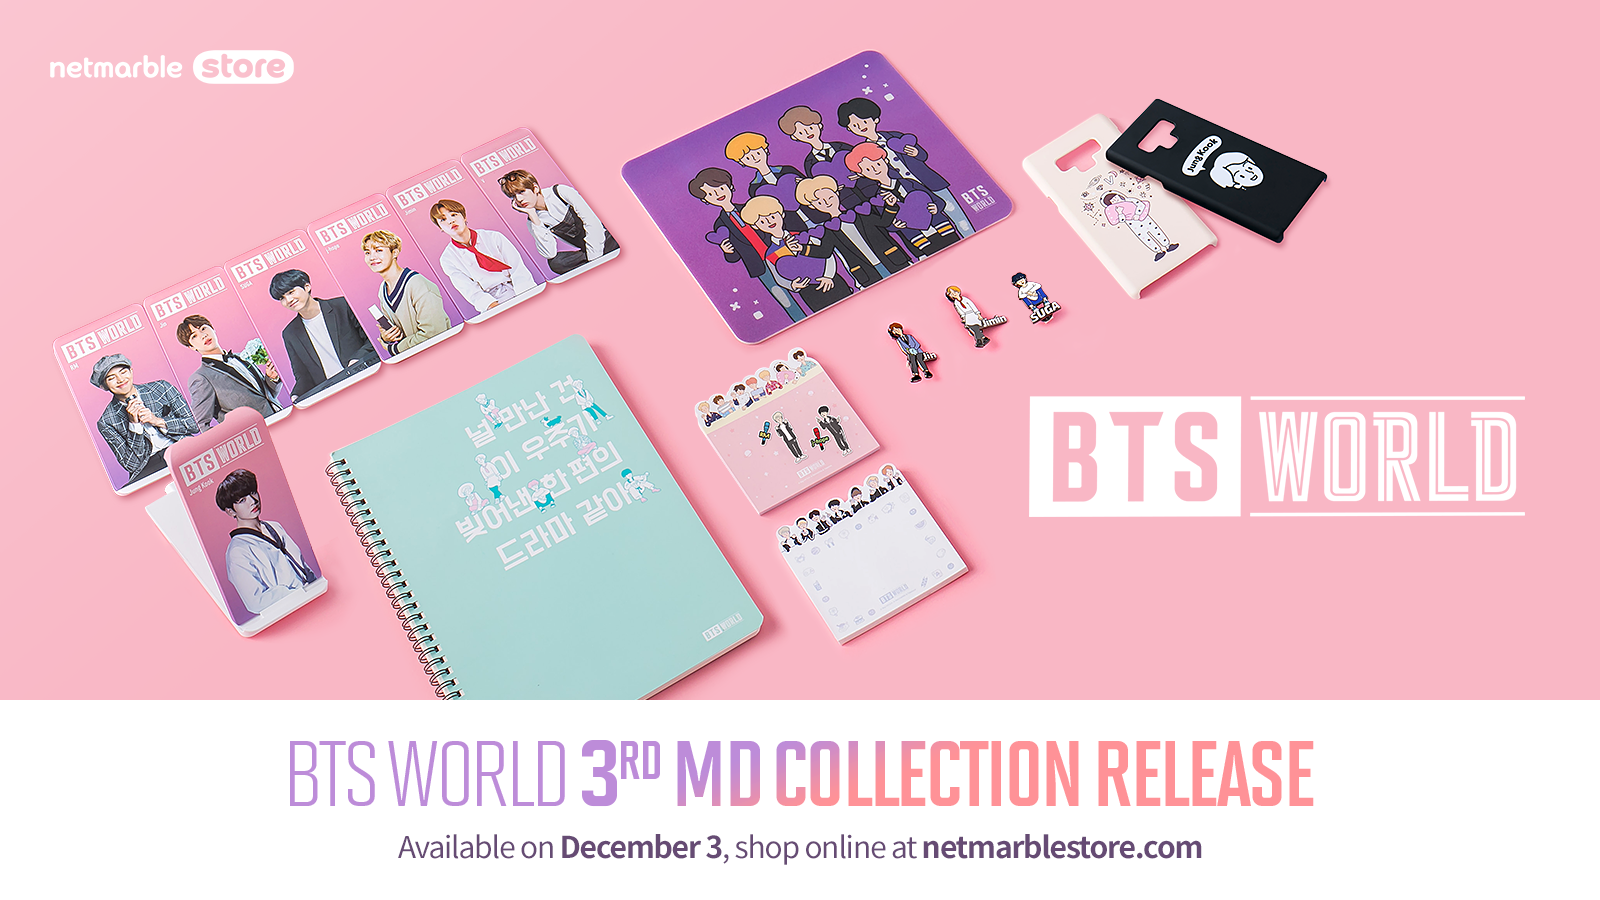 NETMARBLE'S NEW BTS WORLD MERCHANDISE COLLECTION NOW AVAILABLE ONLINE ON DECEMBER 3